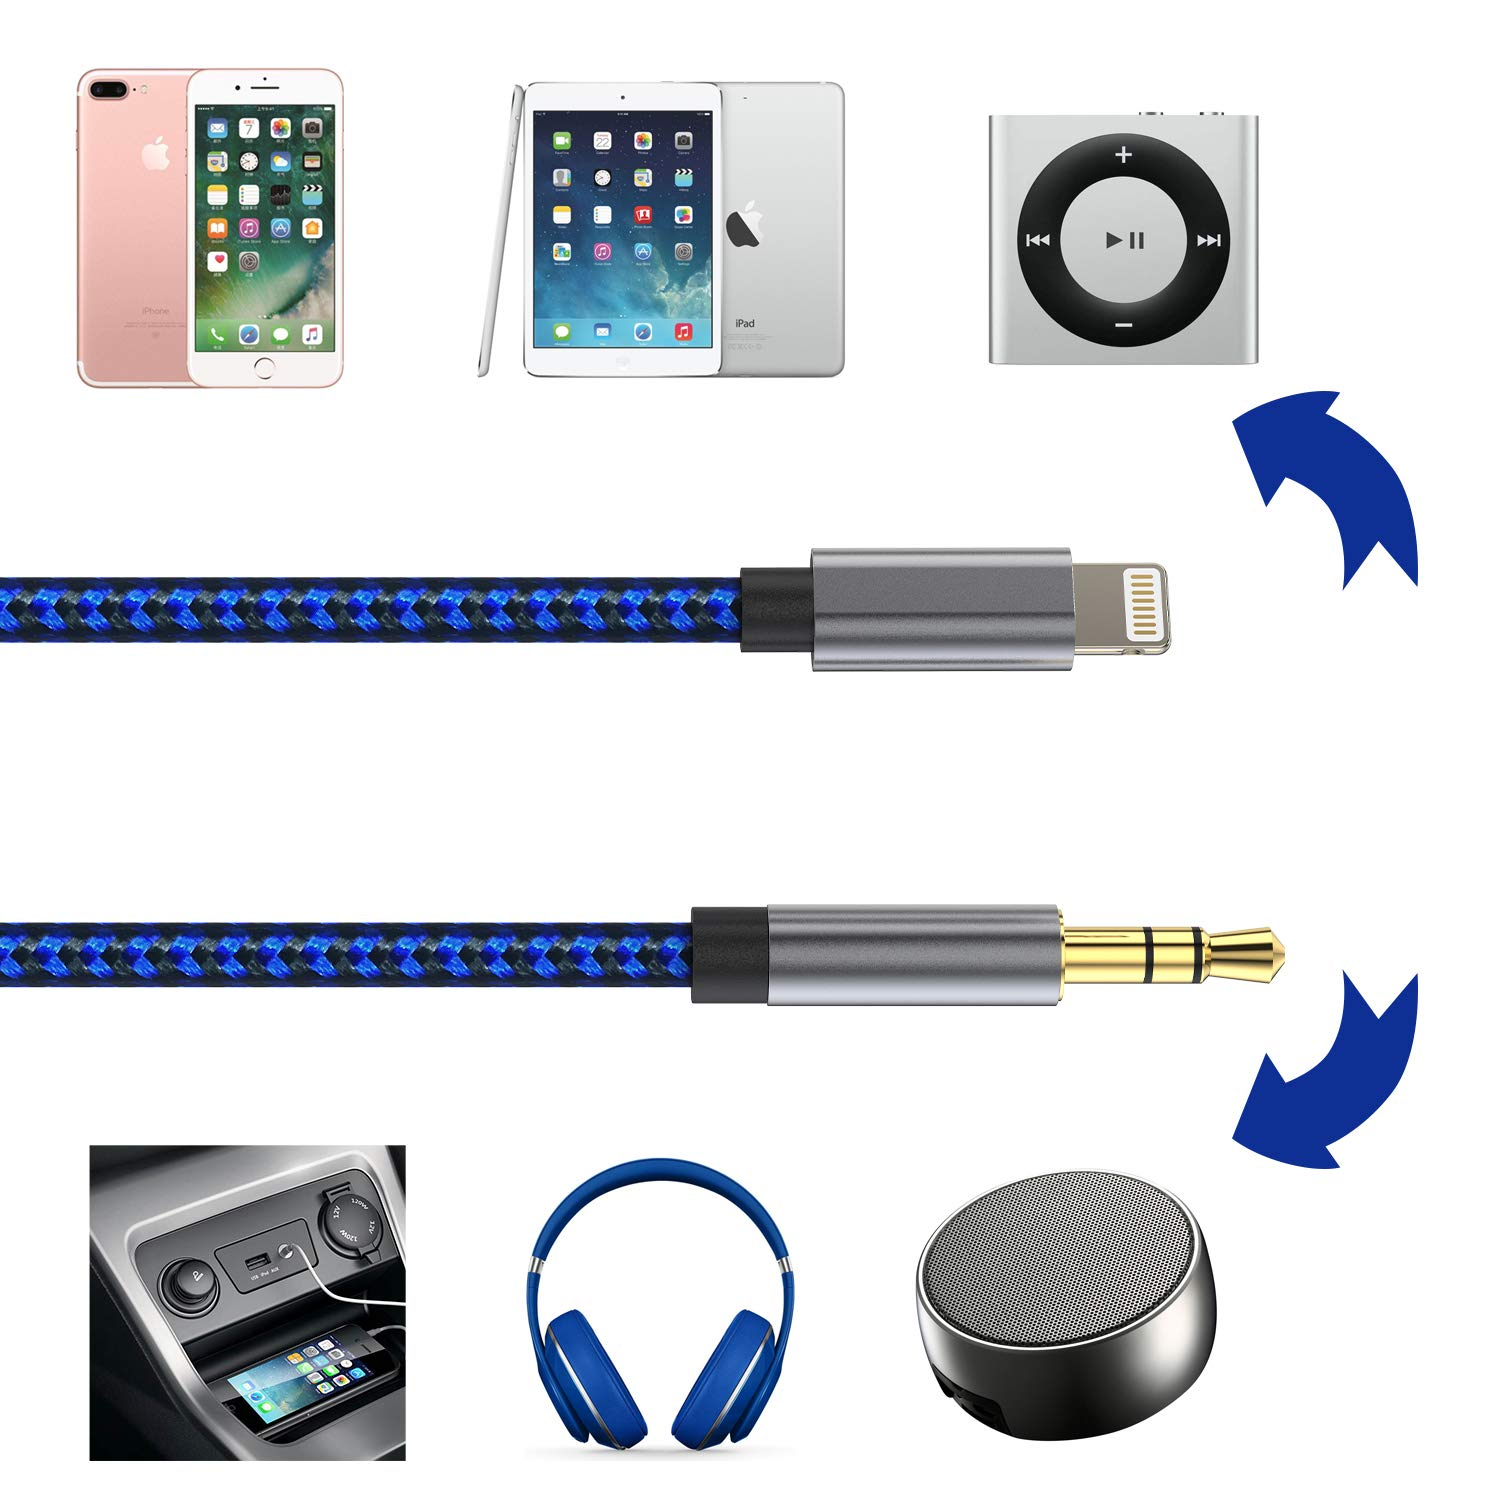 6.6Feet//Black 6ft Lengthened Car aux Cord for iPhone Audio Aux Cable for Car for iPhone Compatible with X//XS//XS MAX//XR//8//8P//7//7P,Support The Latest iOS System Include iOS 10//11//12 and Above 6